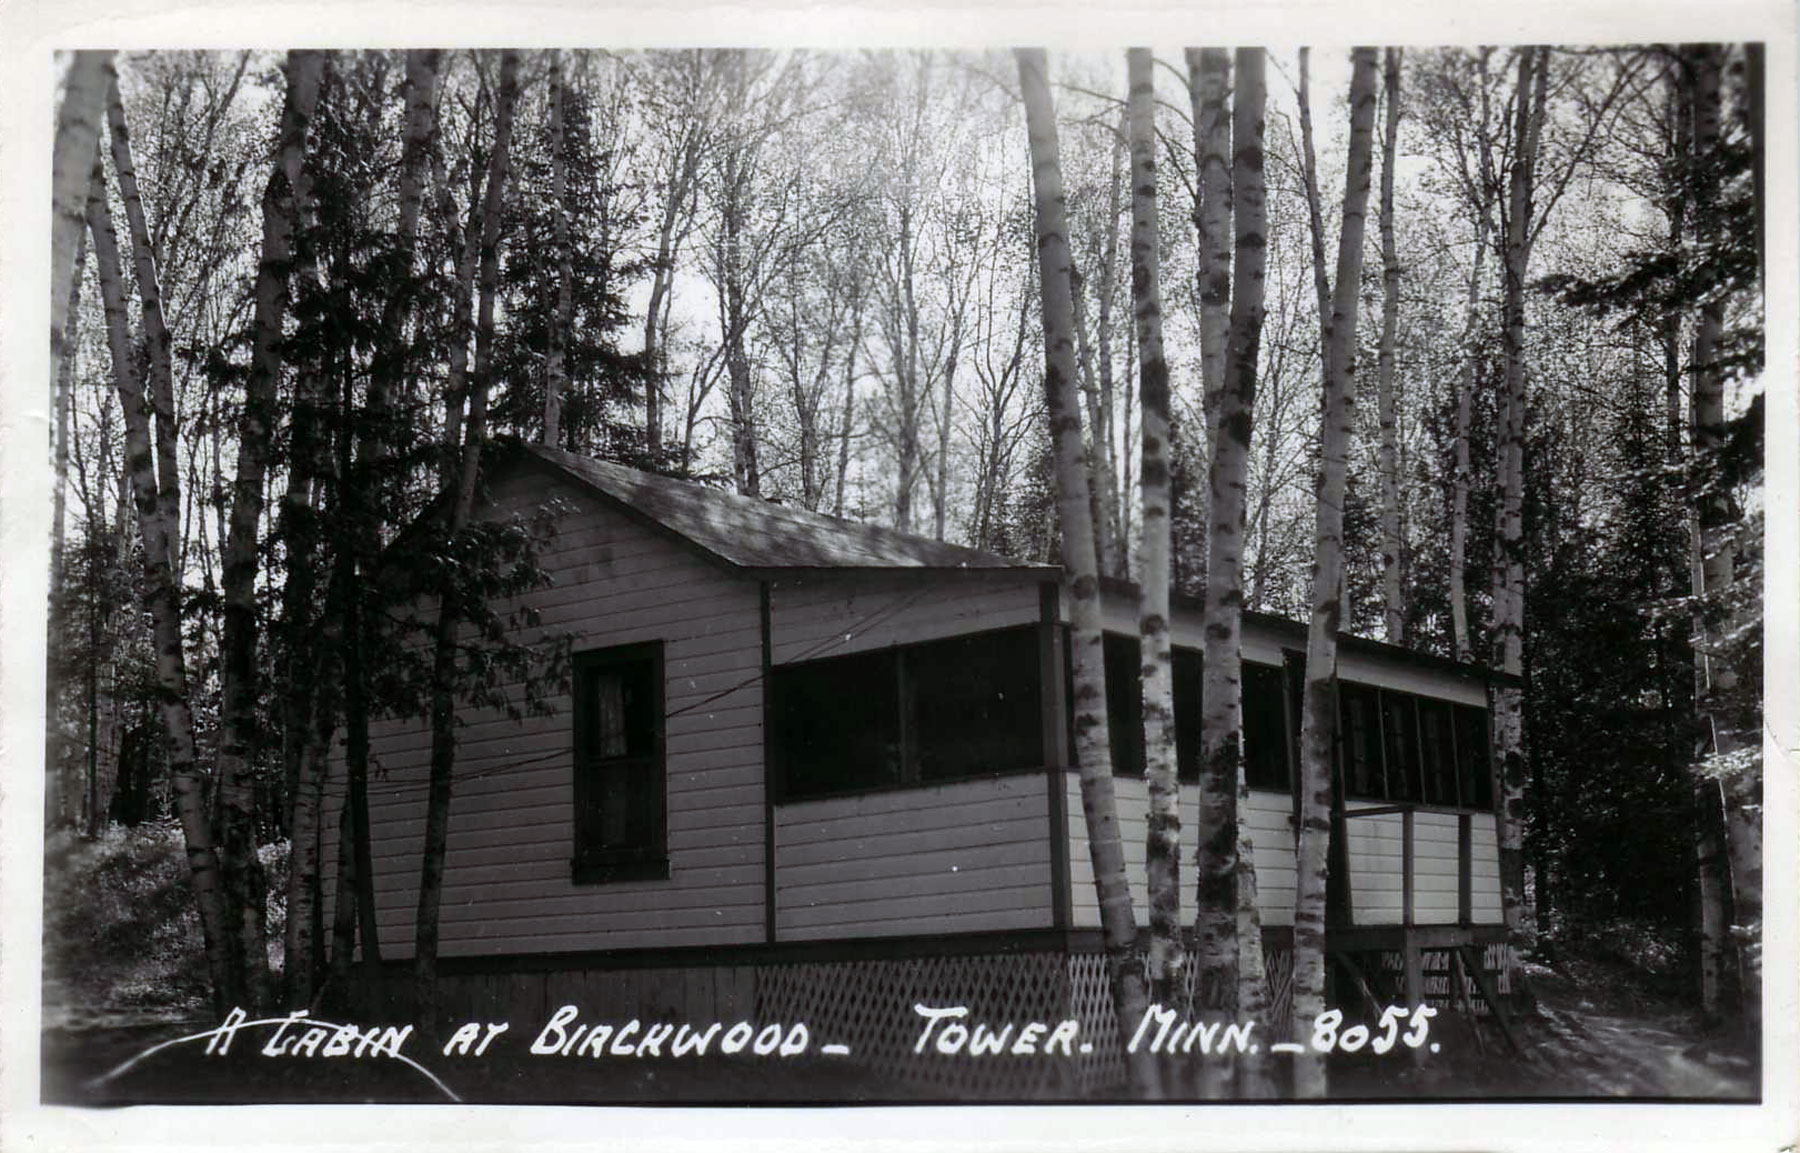 A simple summer cabin at Birchwood, a Lake Vermilion resort.